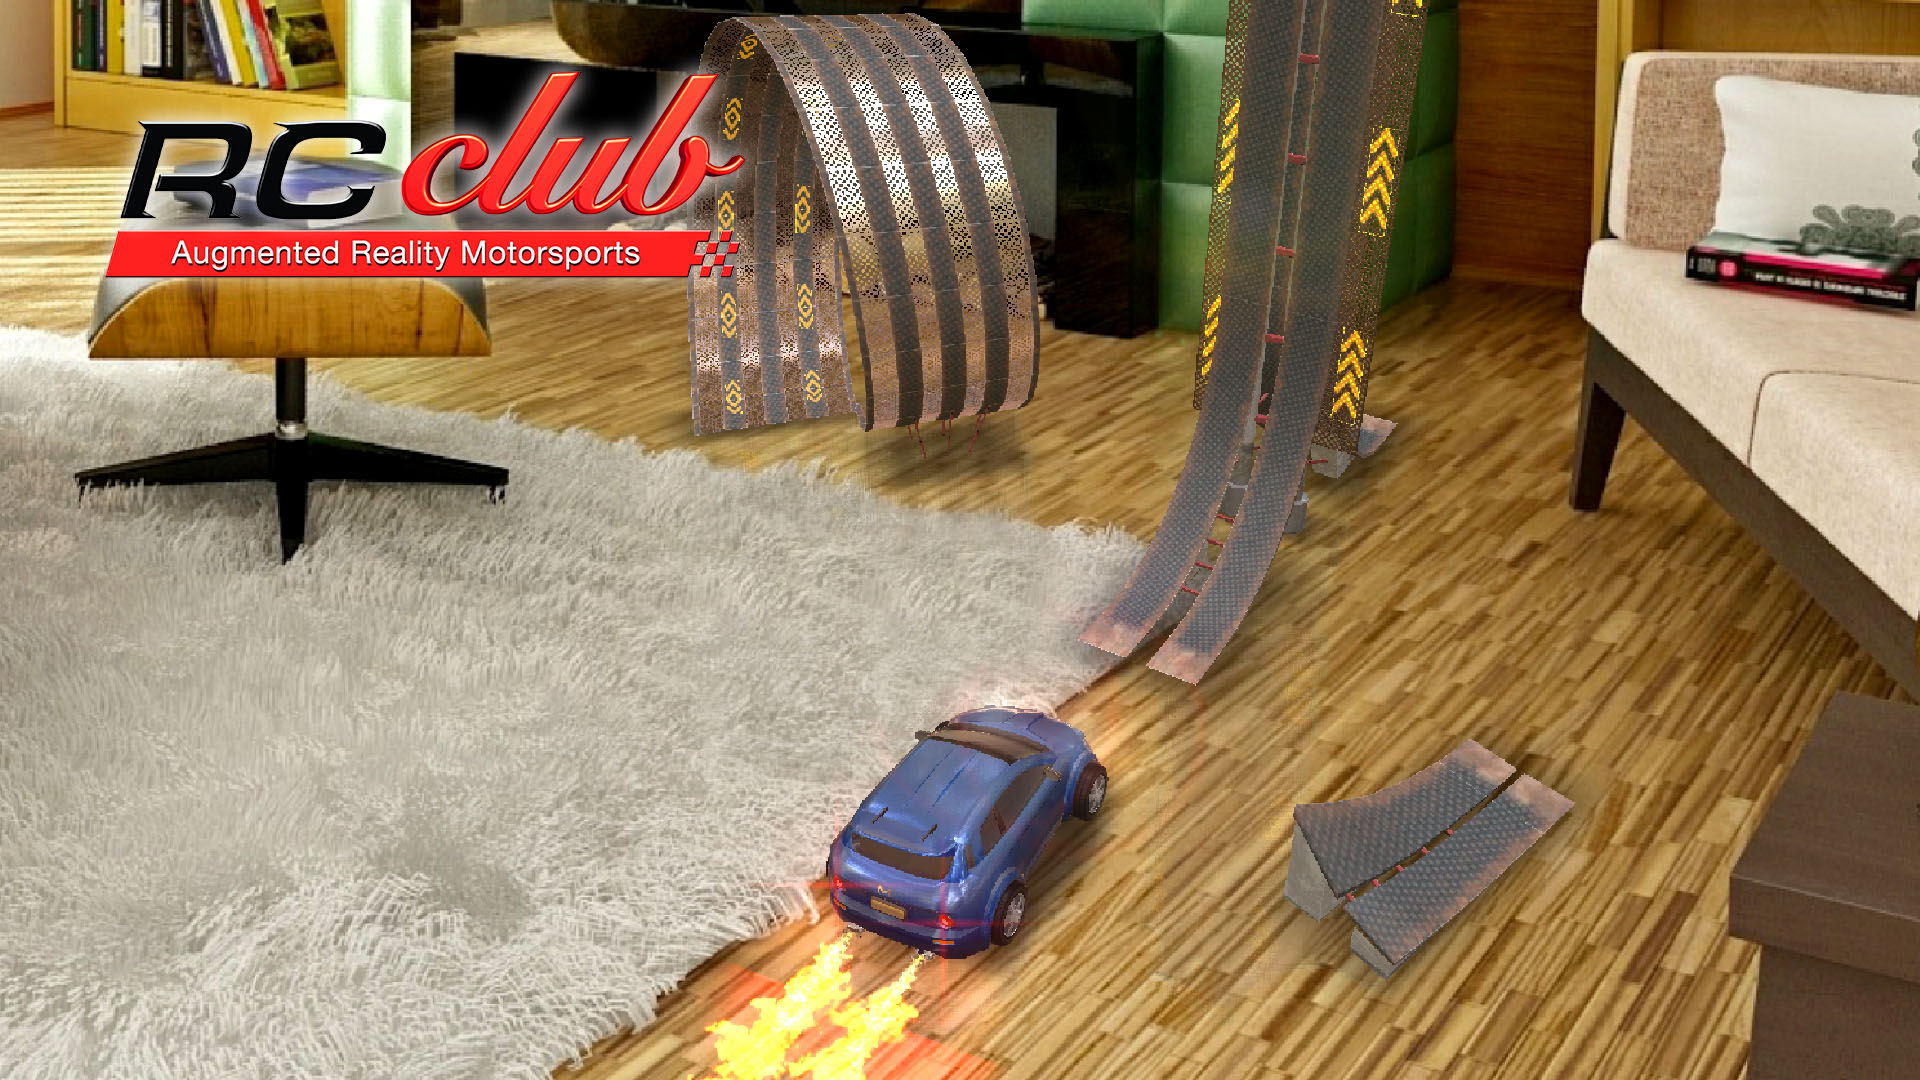 RC Club mobile game accelerates onto iPhones and iPads